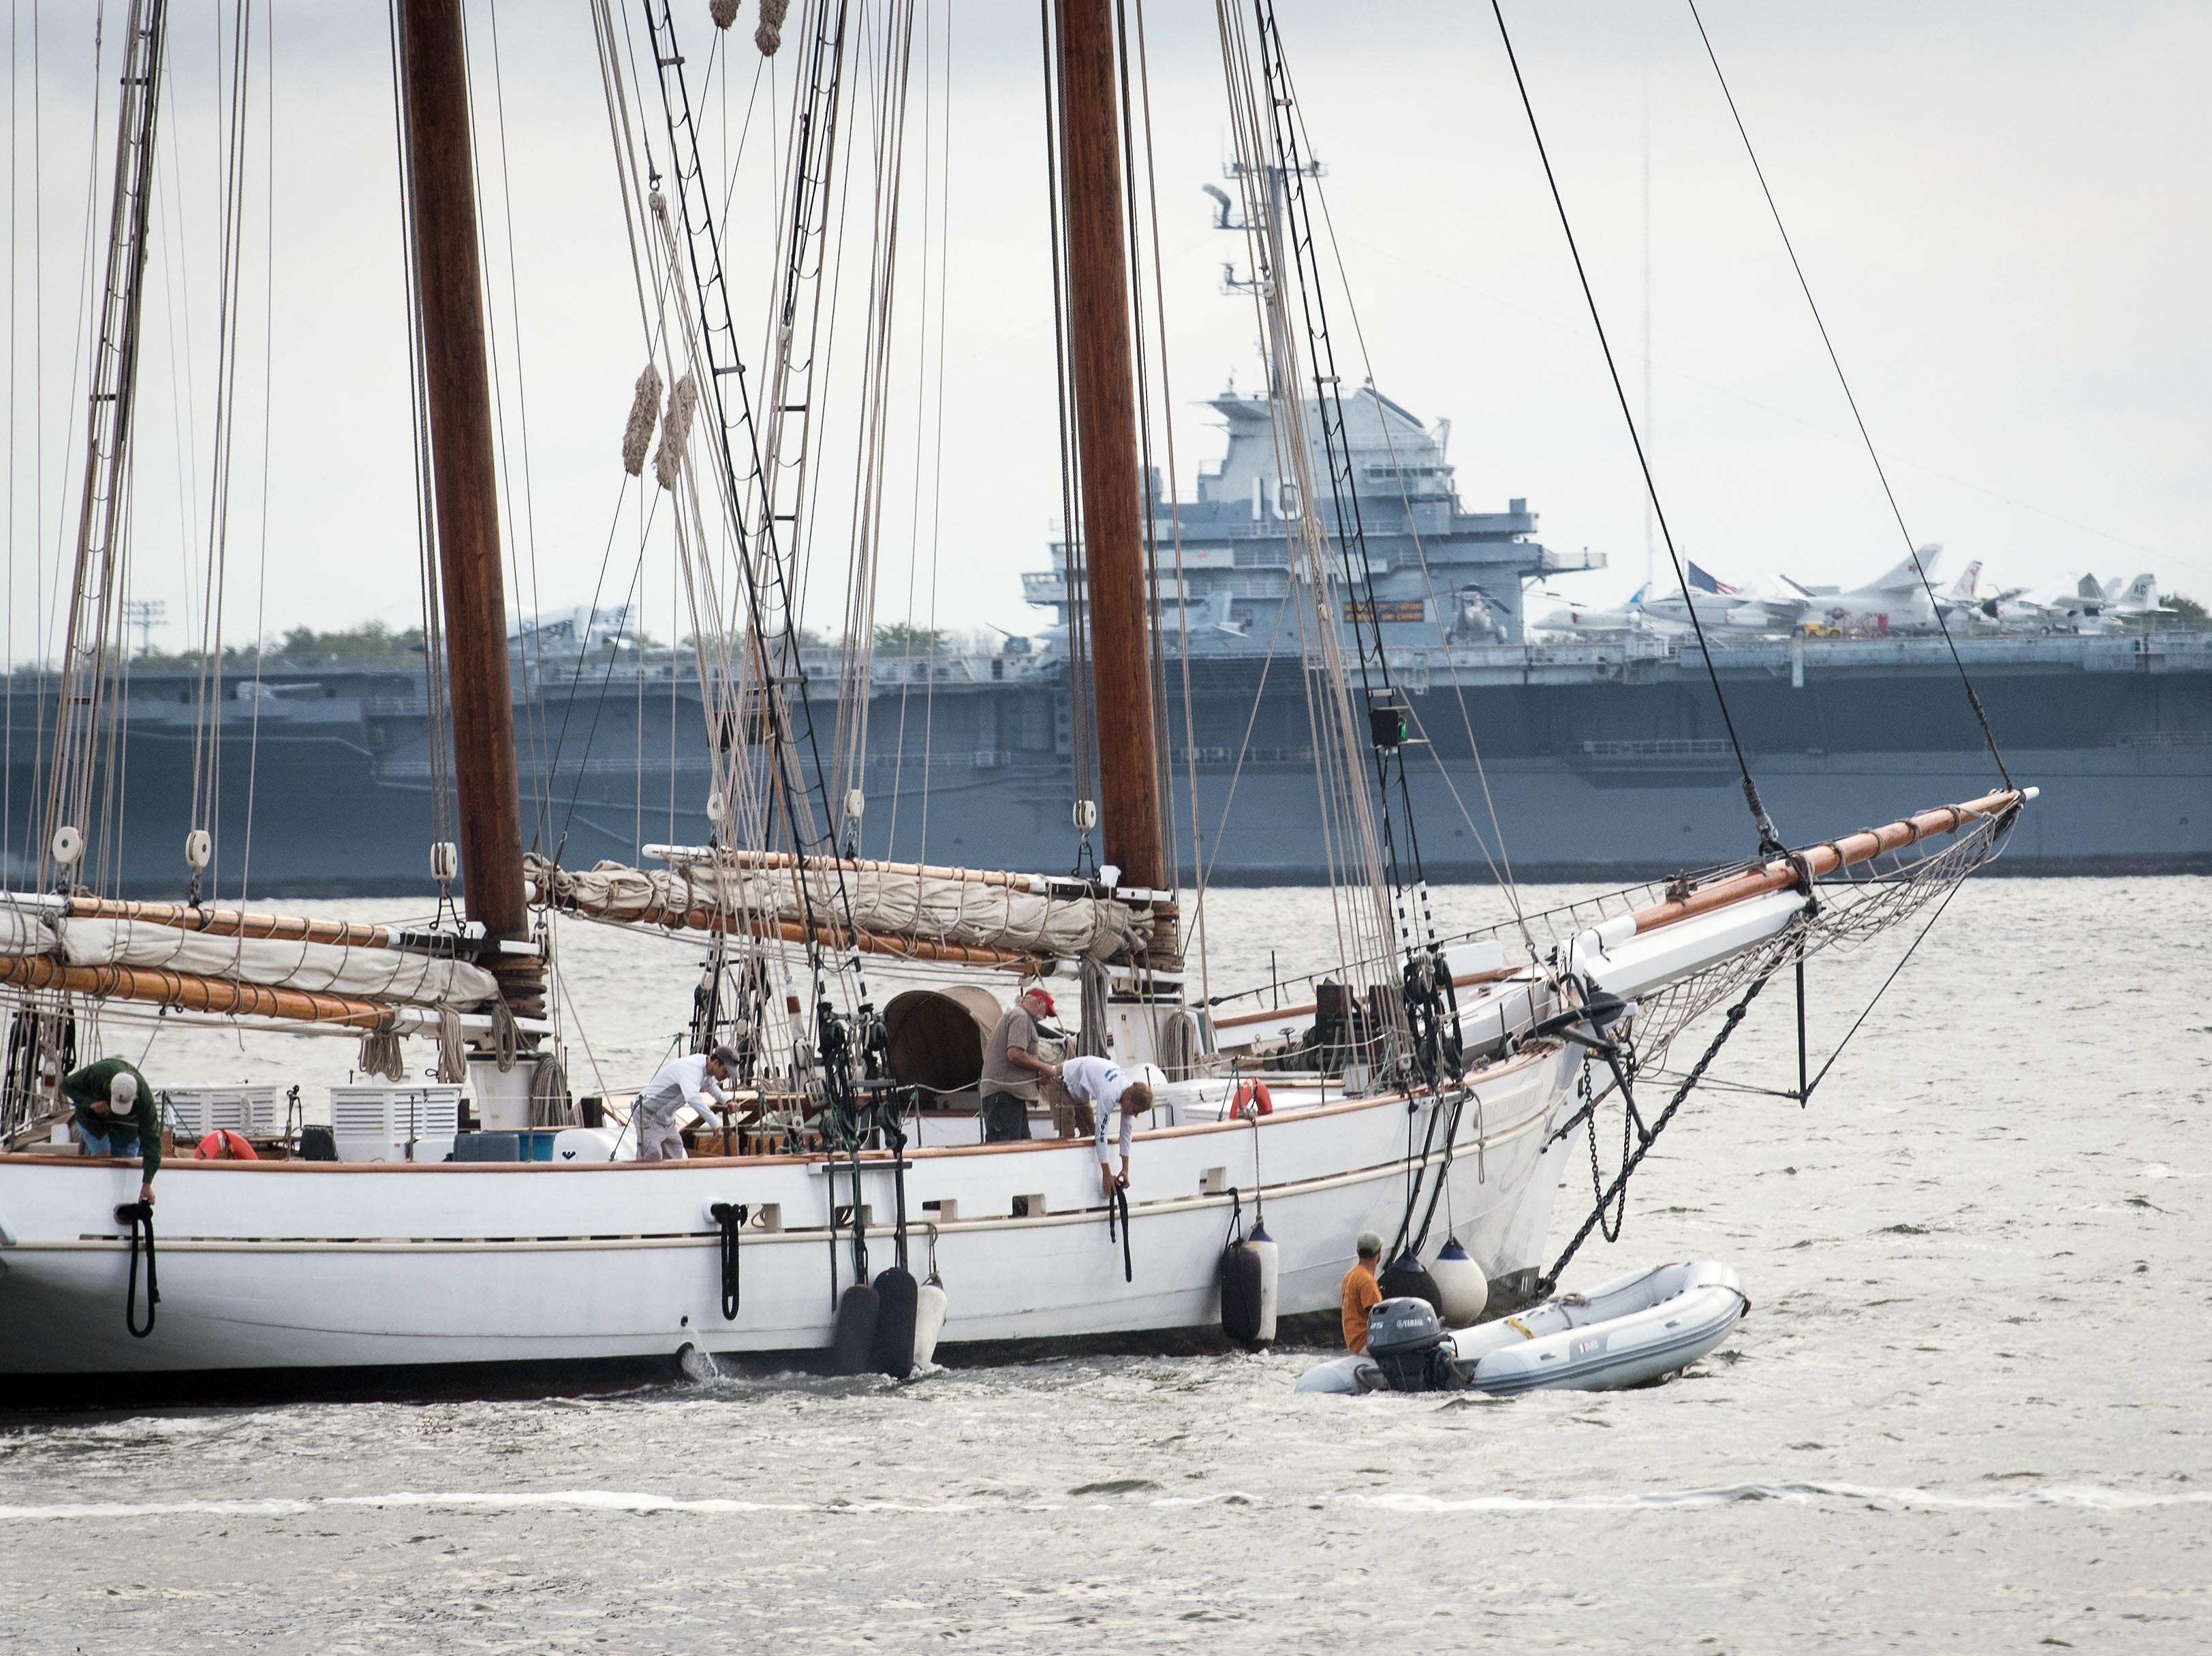 September 13, 2018; Charleston, SC, USA; The 140 foot Spirit of South Carolina schooner makes way heading upriver to find a safe location away from Charleston before Hurricane Florence makes landfall along the East Coast. The USS Yorktown aircraft carrier is seen in the background.